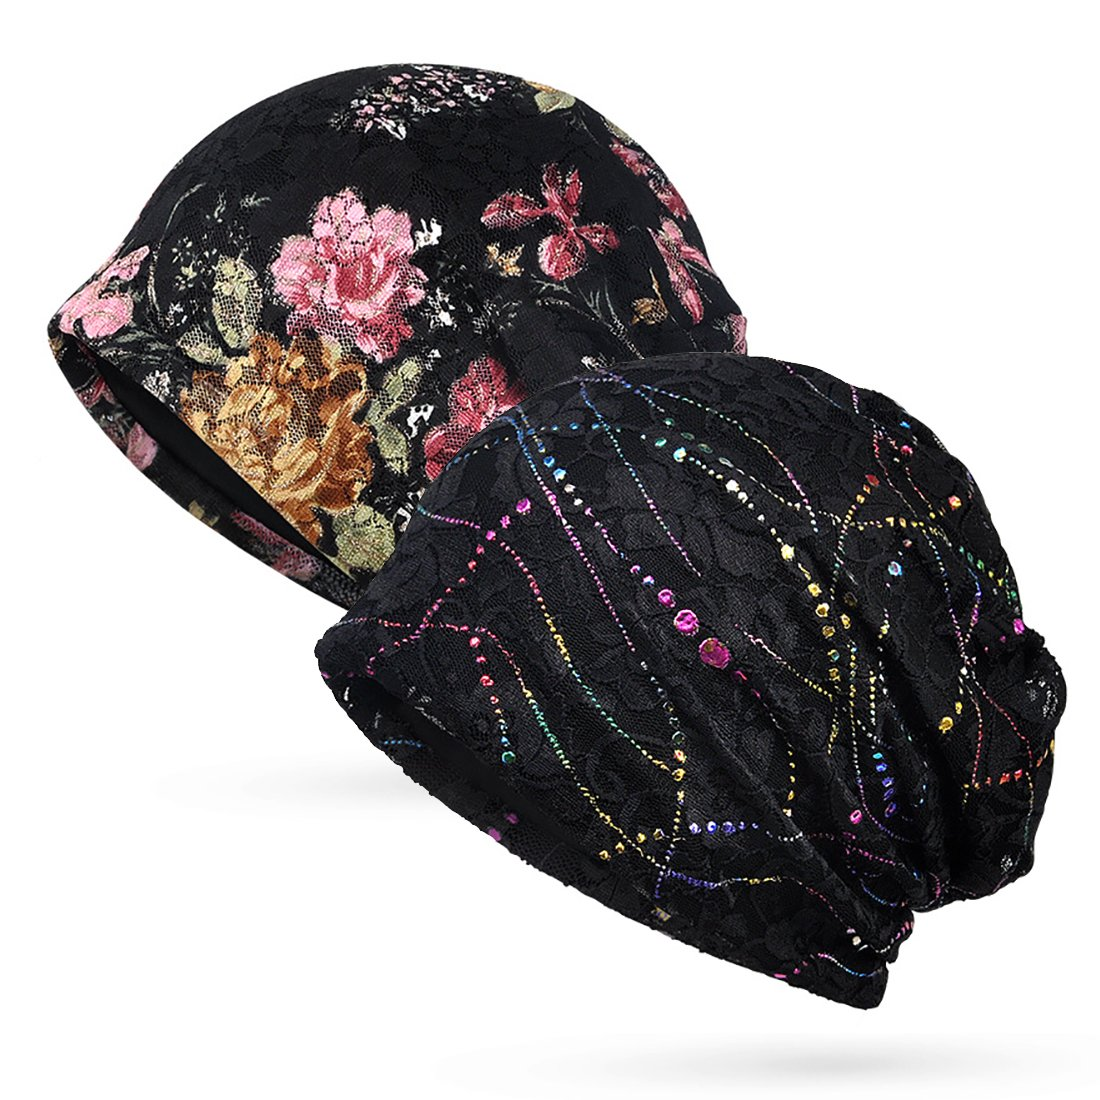 Trendeer Womens Floral Lace Beanie Slouchy Turban Hat Cancer Headwear Chemo Cap (One Size, Stretchable, Style 1-4 Black) by Trendeer